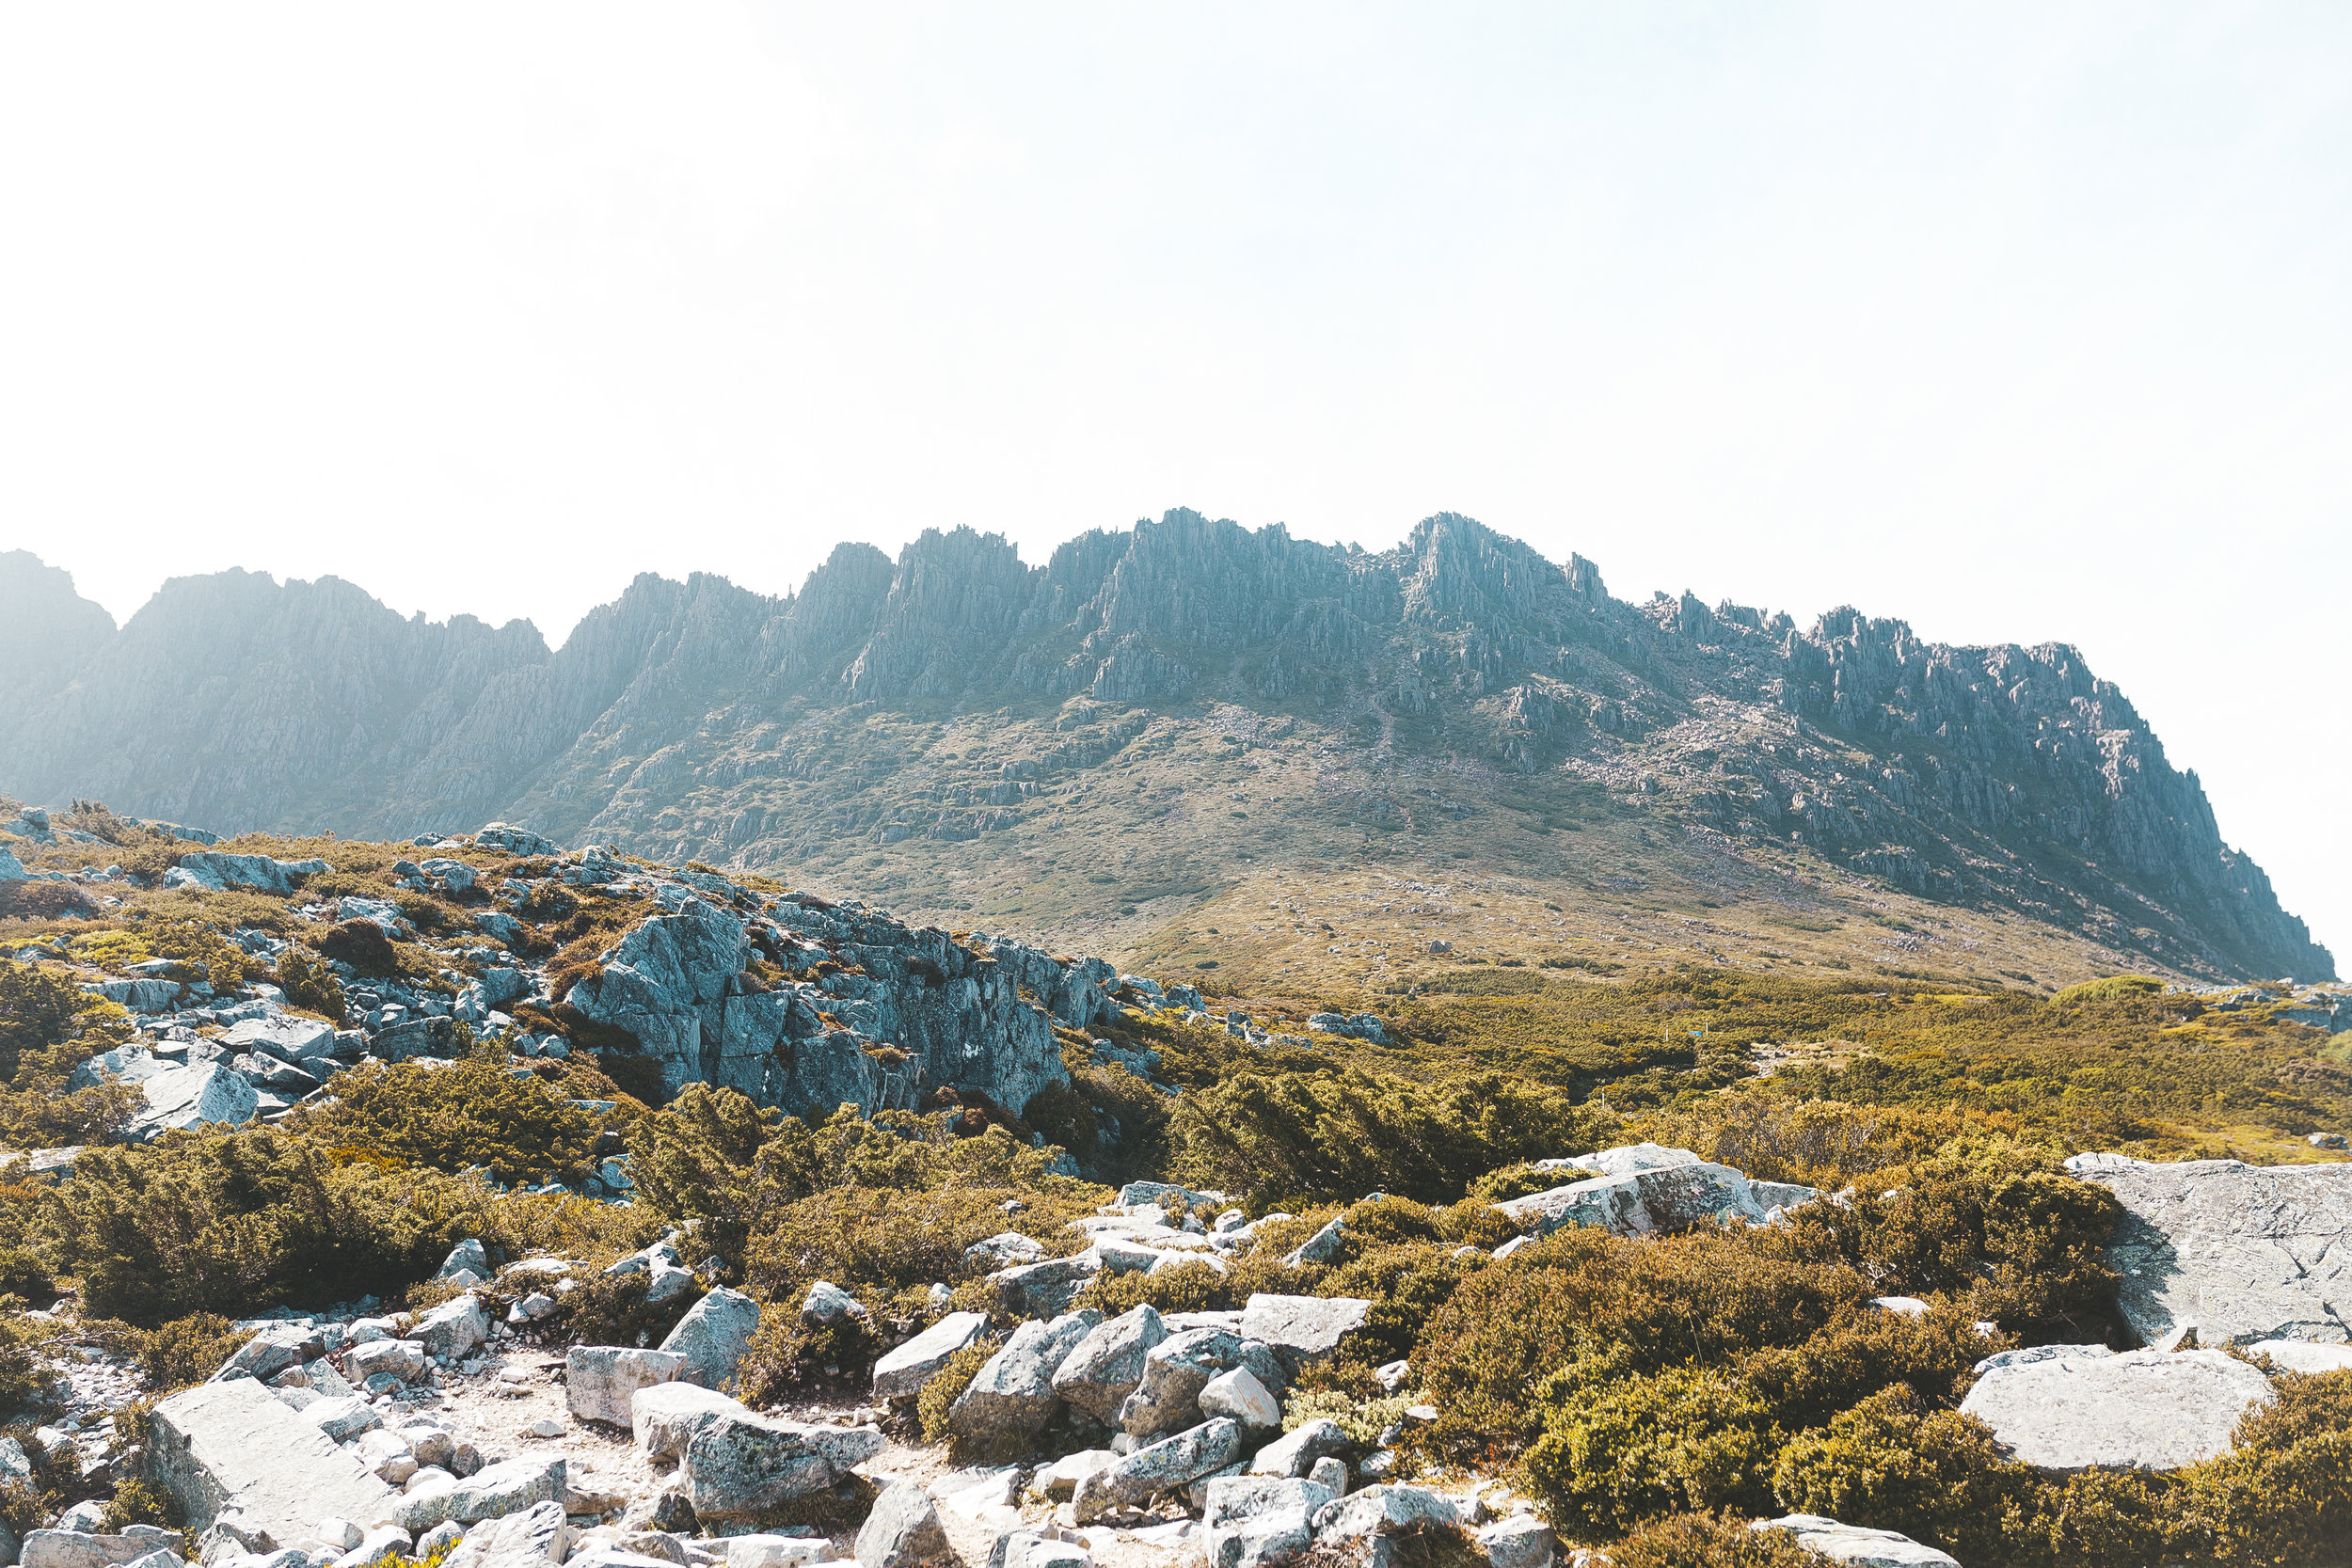 The view of Cradle Mountain from the Kitchen Hut AFTER the clouds cleared, just a few minutes later